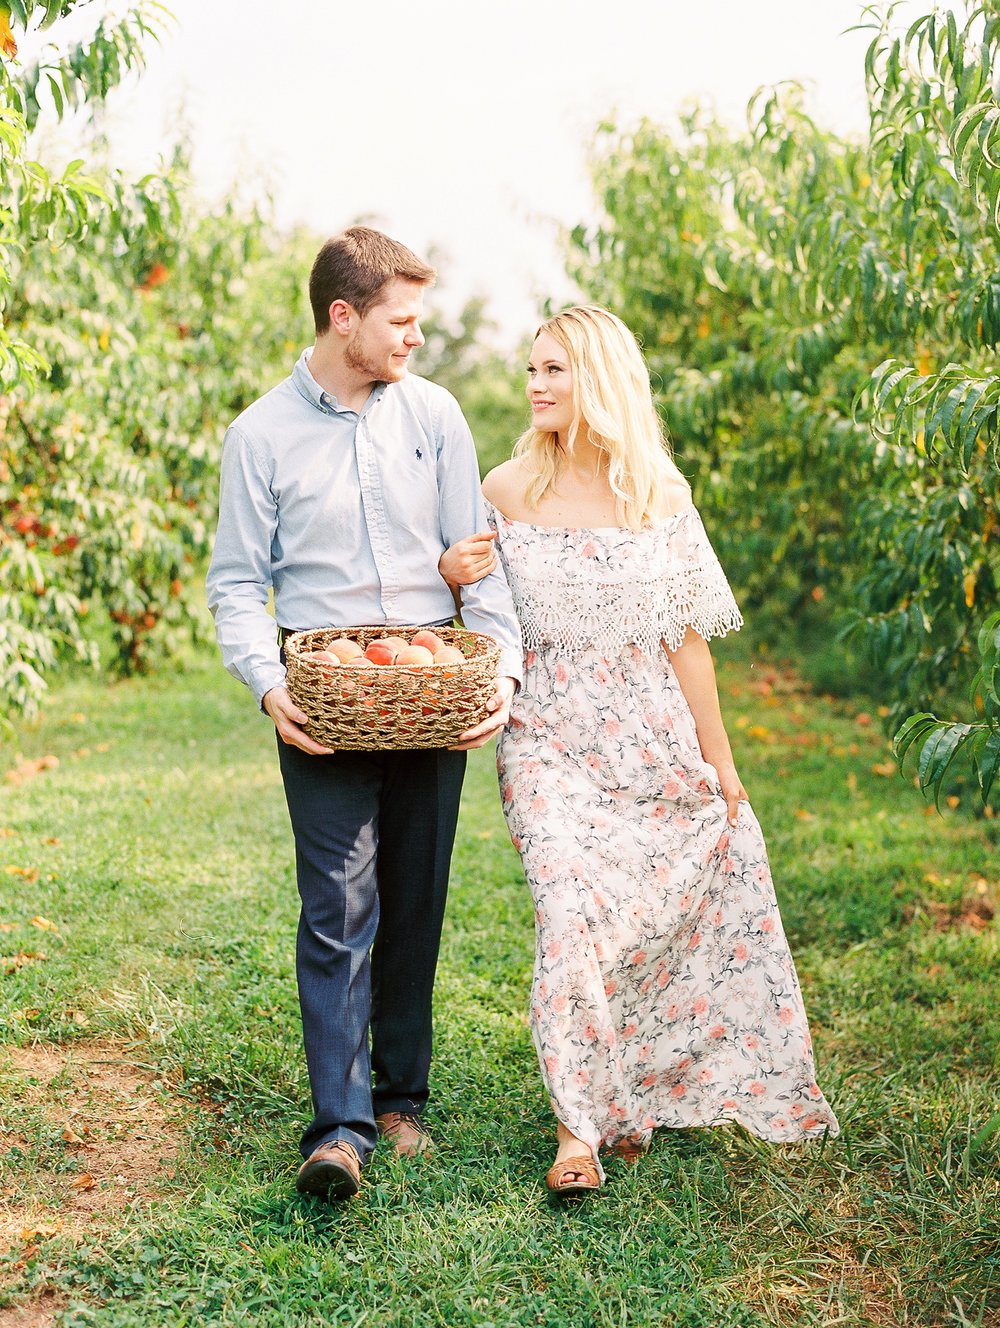 Peach-Orchard-Engagement-Session-Arkansas_0002.jpg